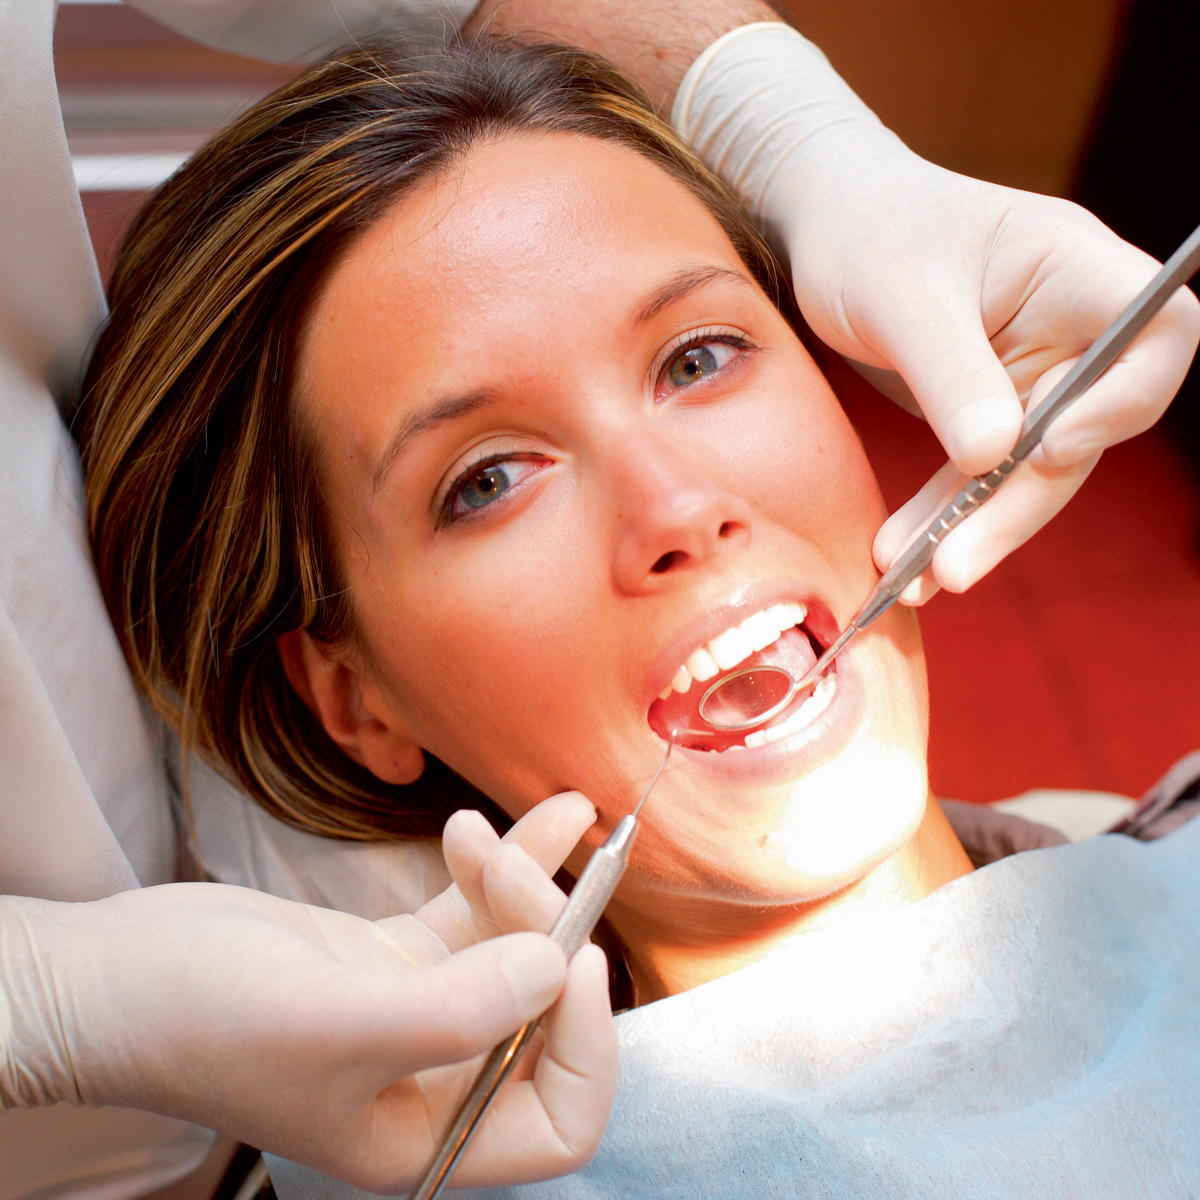 Can pregnant teeth be treated?